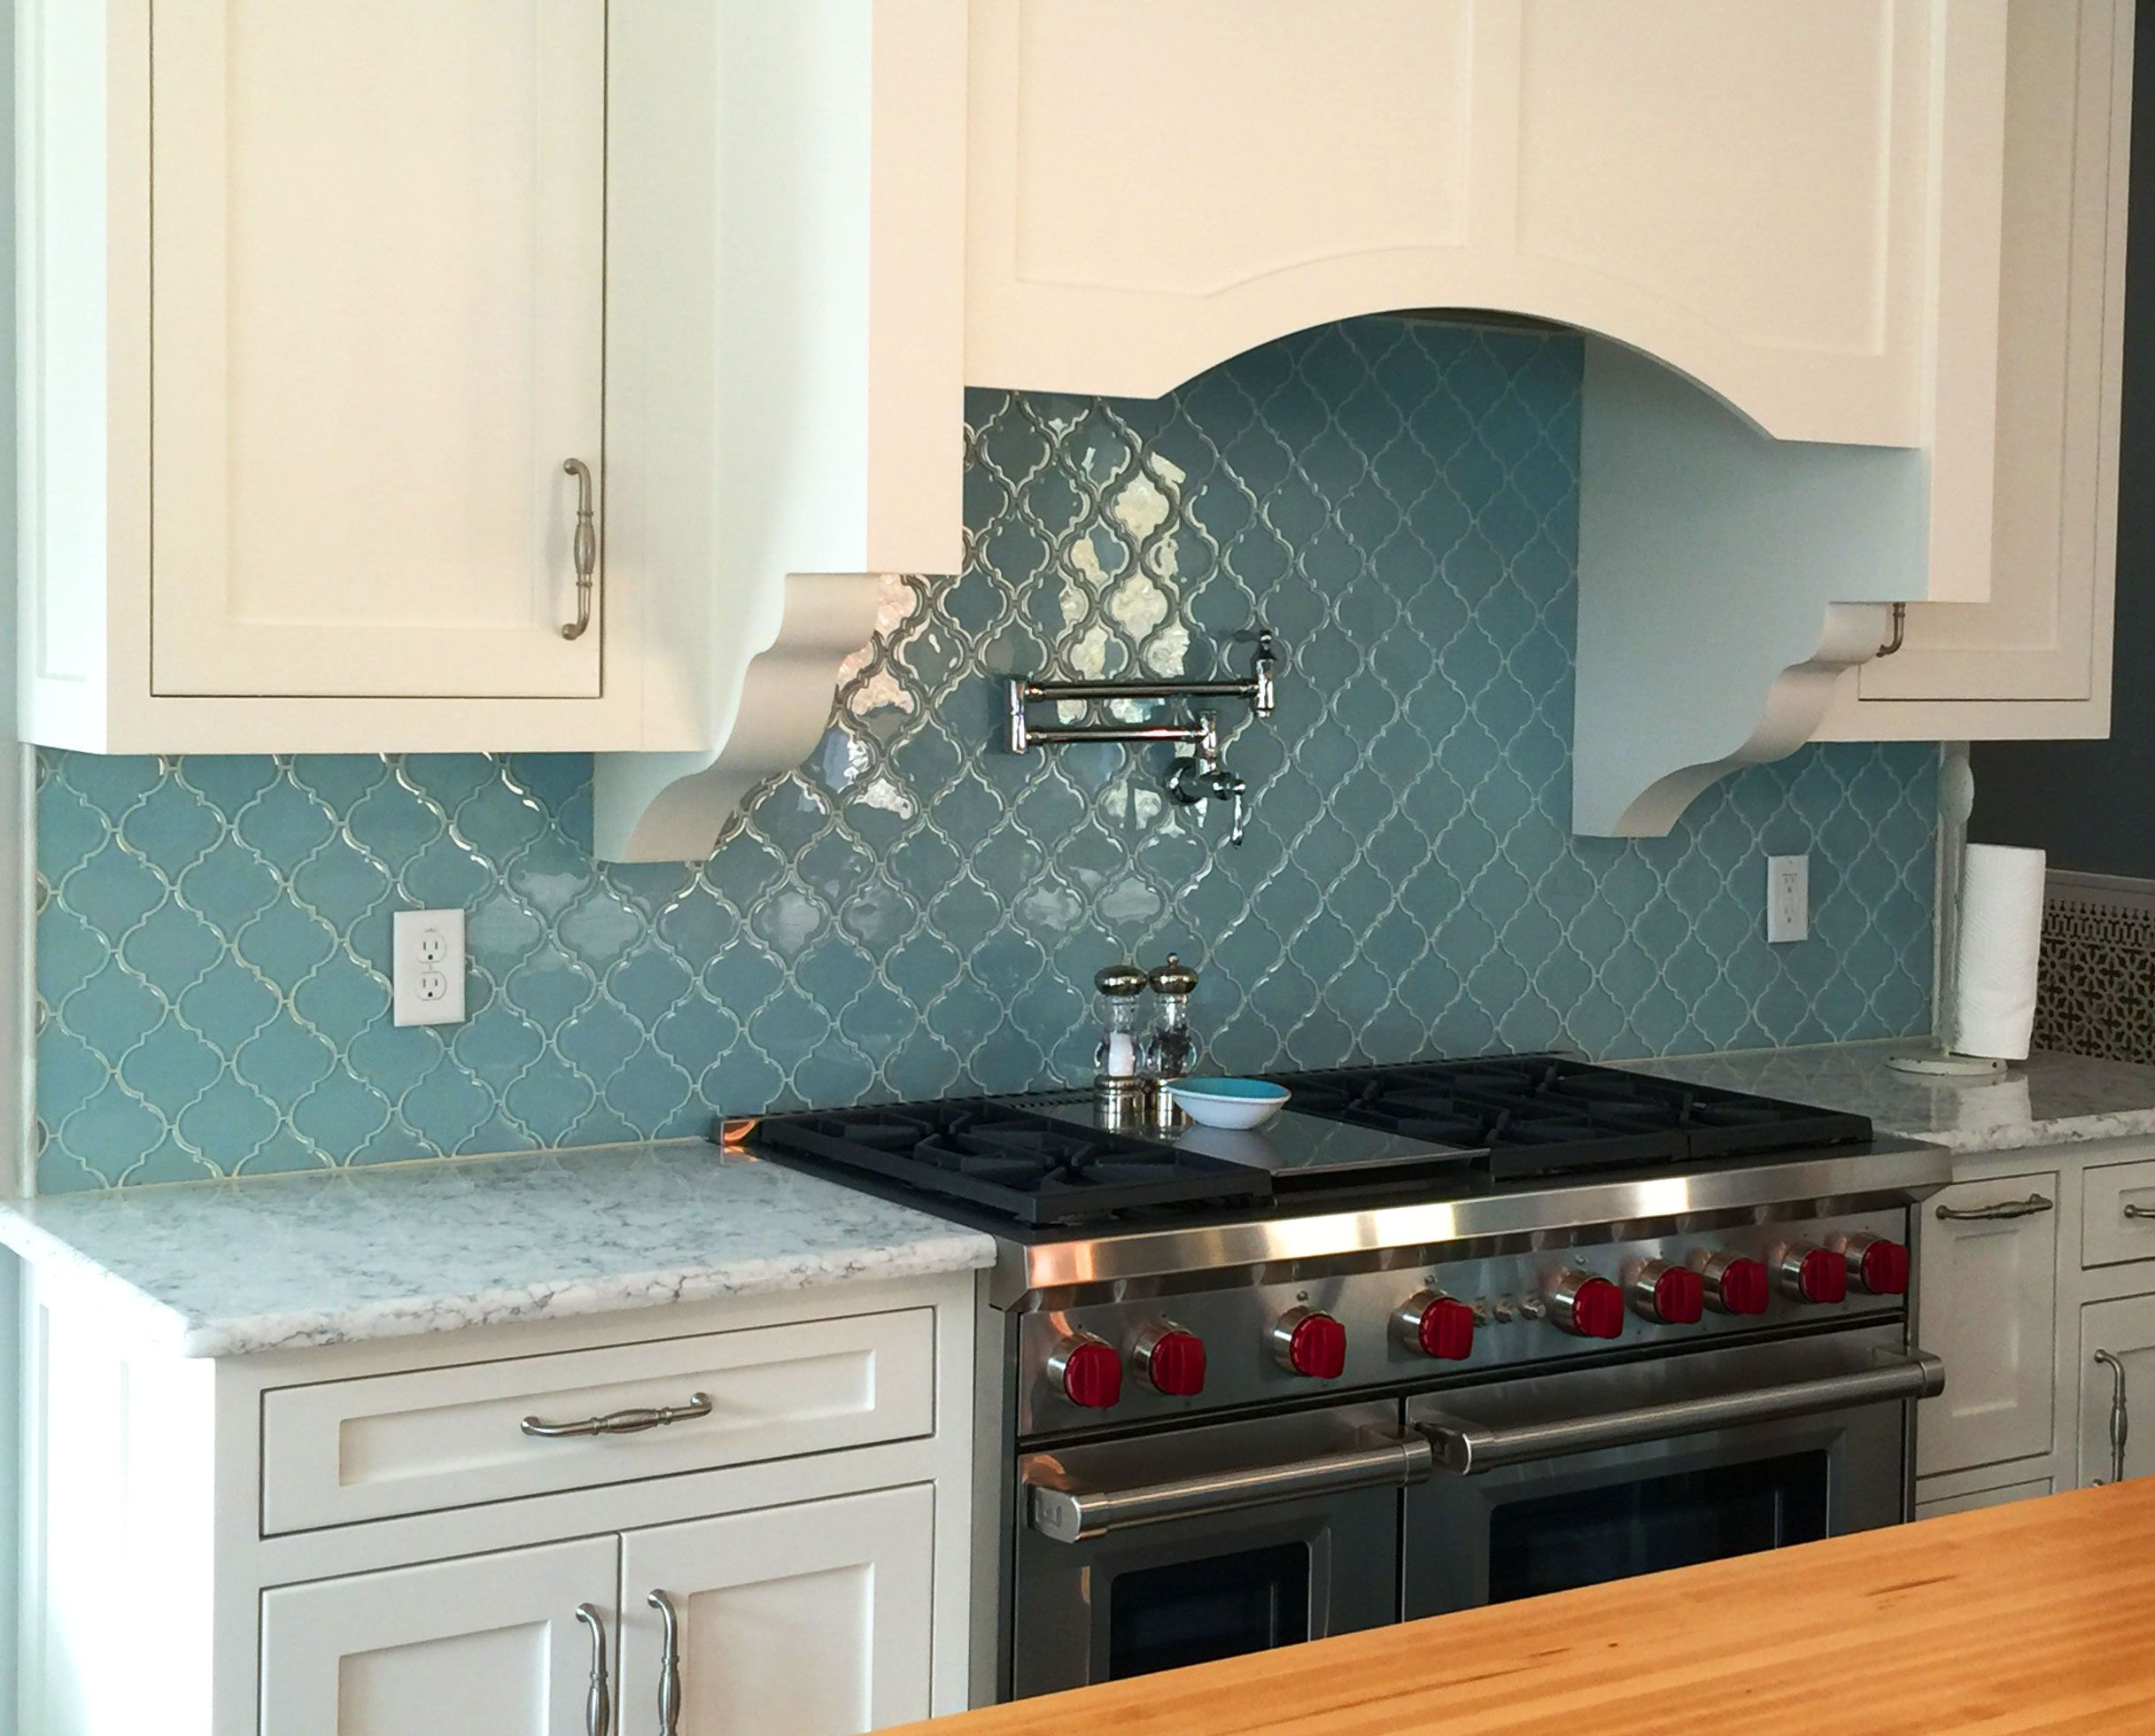 Vapor Arabesque Glass Tile Backsplash Tile Kitchen